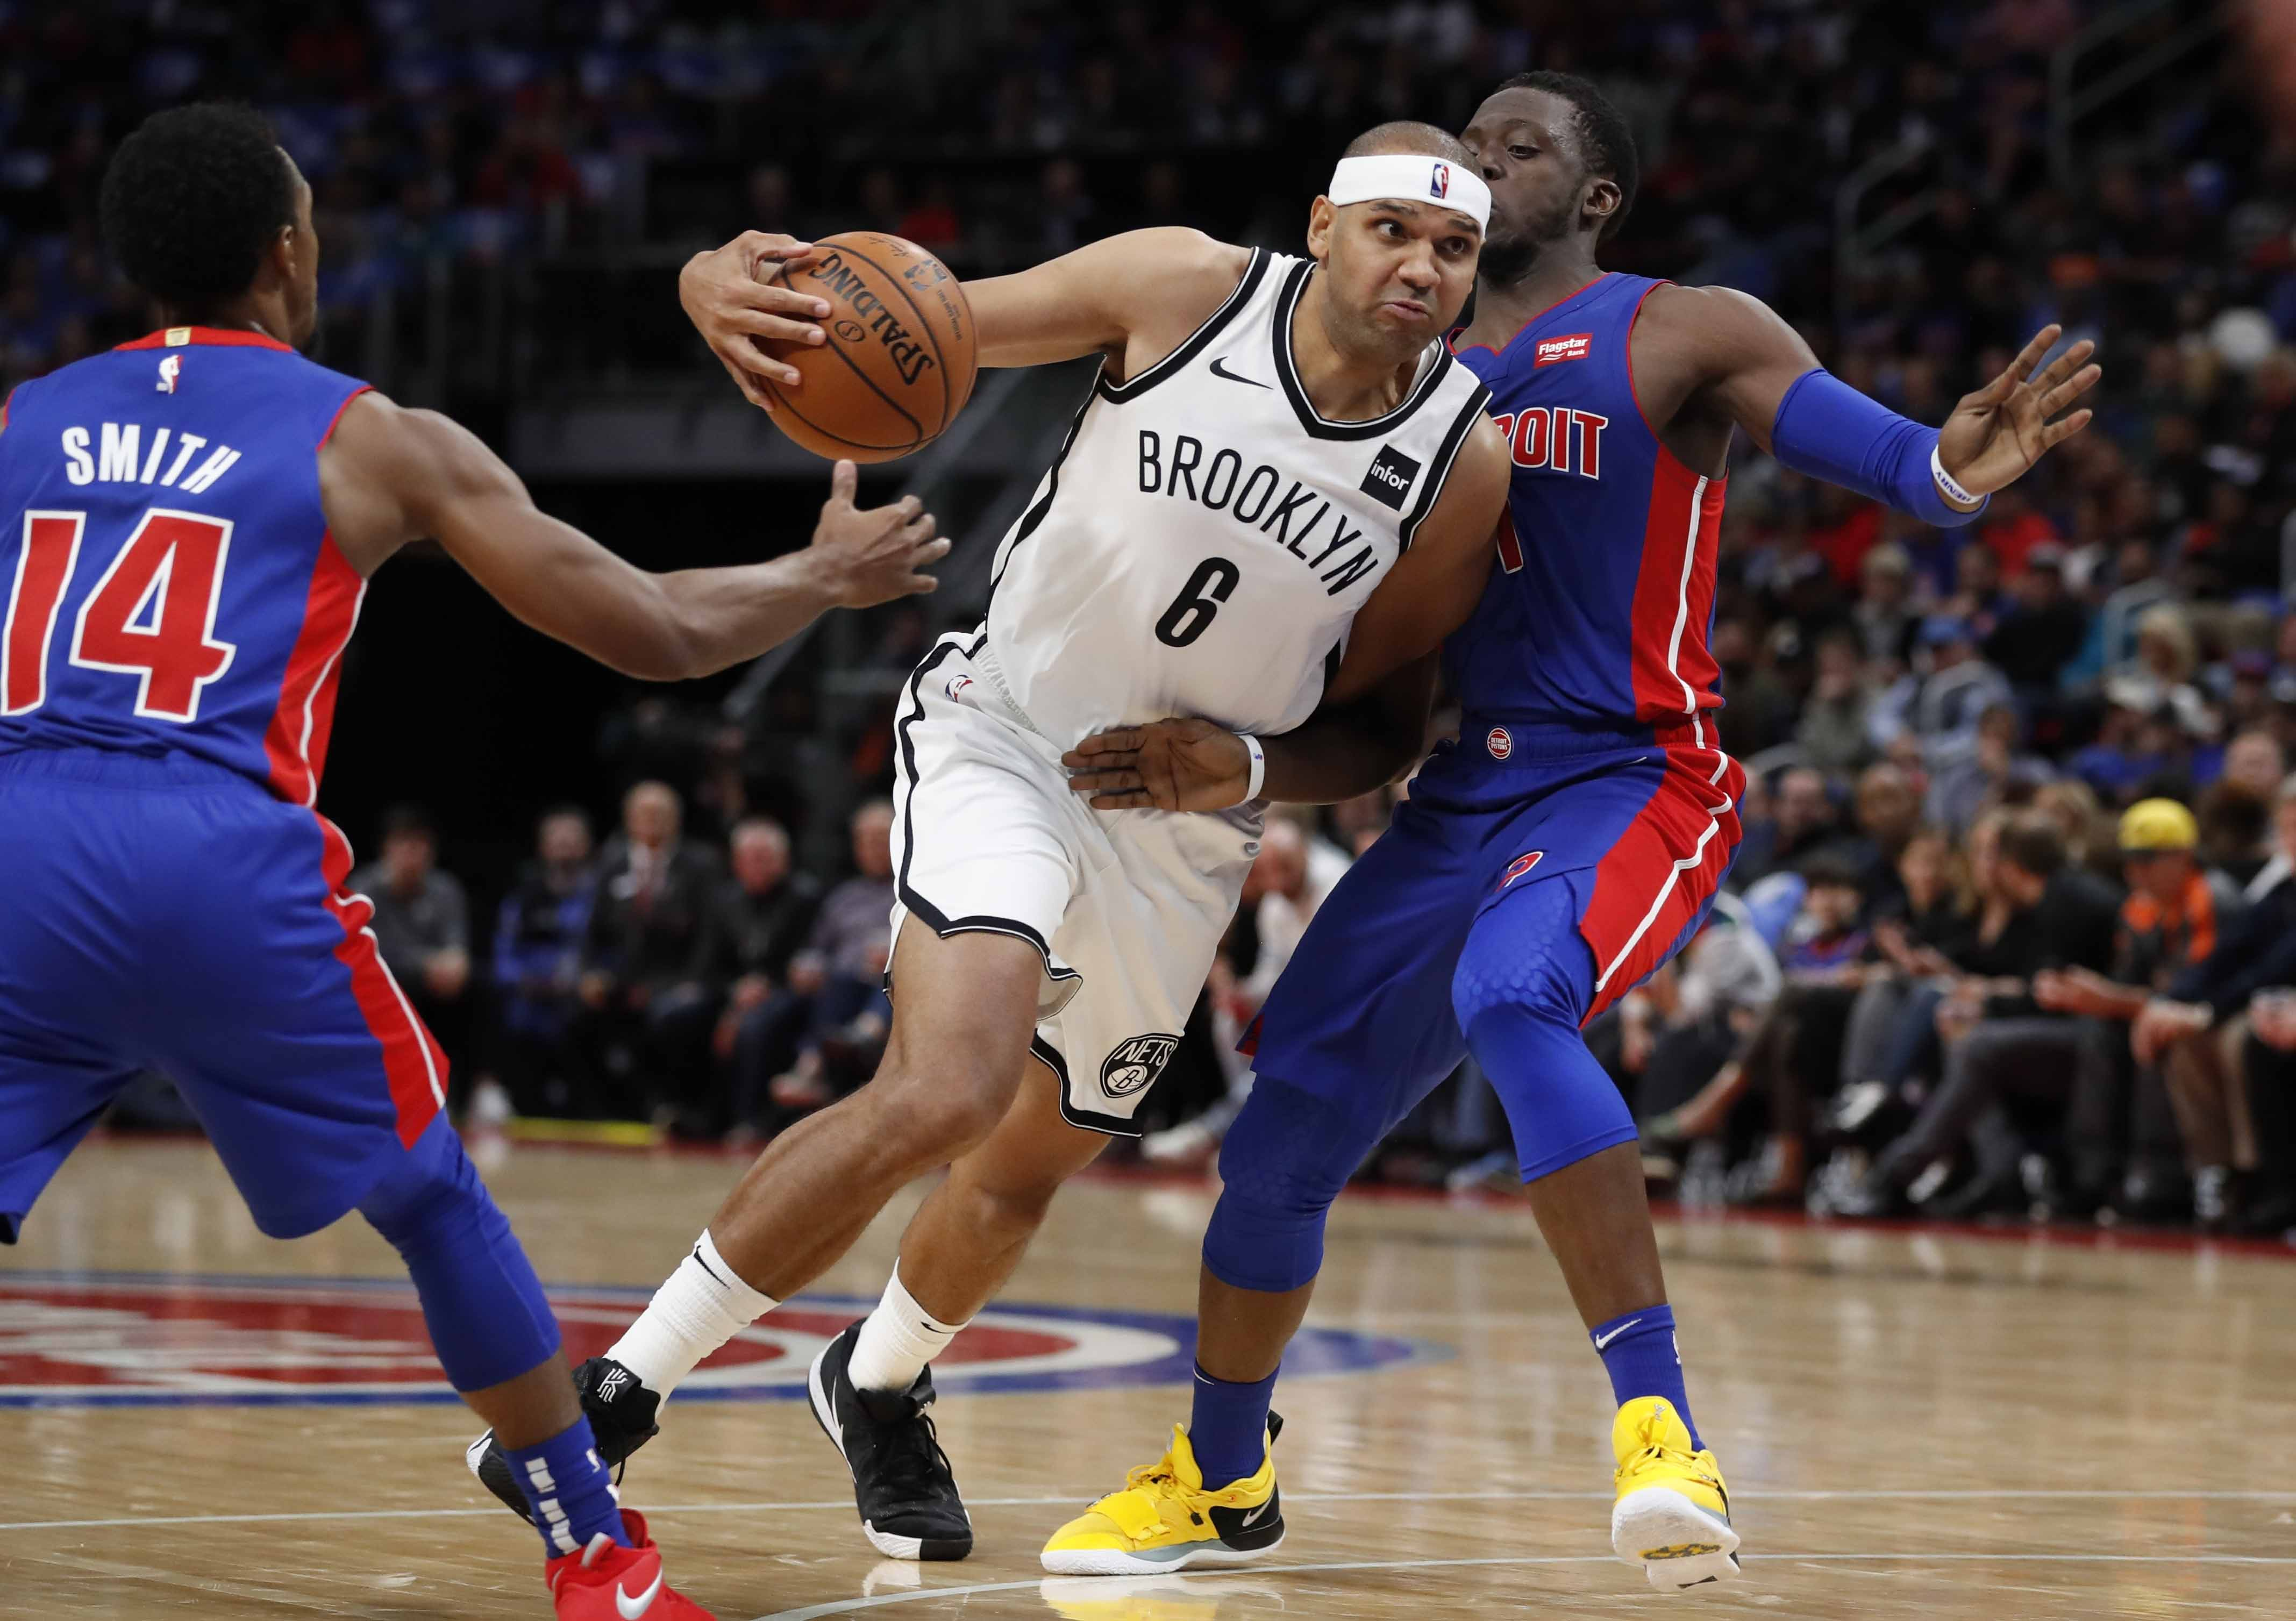 Brooklyn Nets forward Jared Dudley (6) drives between Detroit Pistons guards Ish Smith (14) and Reggie Jackson (1) during the first half of an NBA basketball game in Detroit on Wednesday.